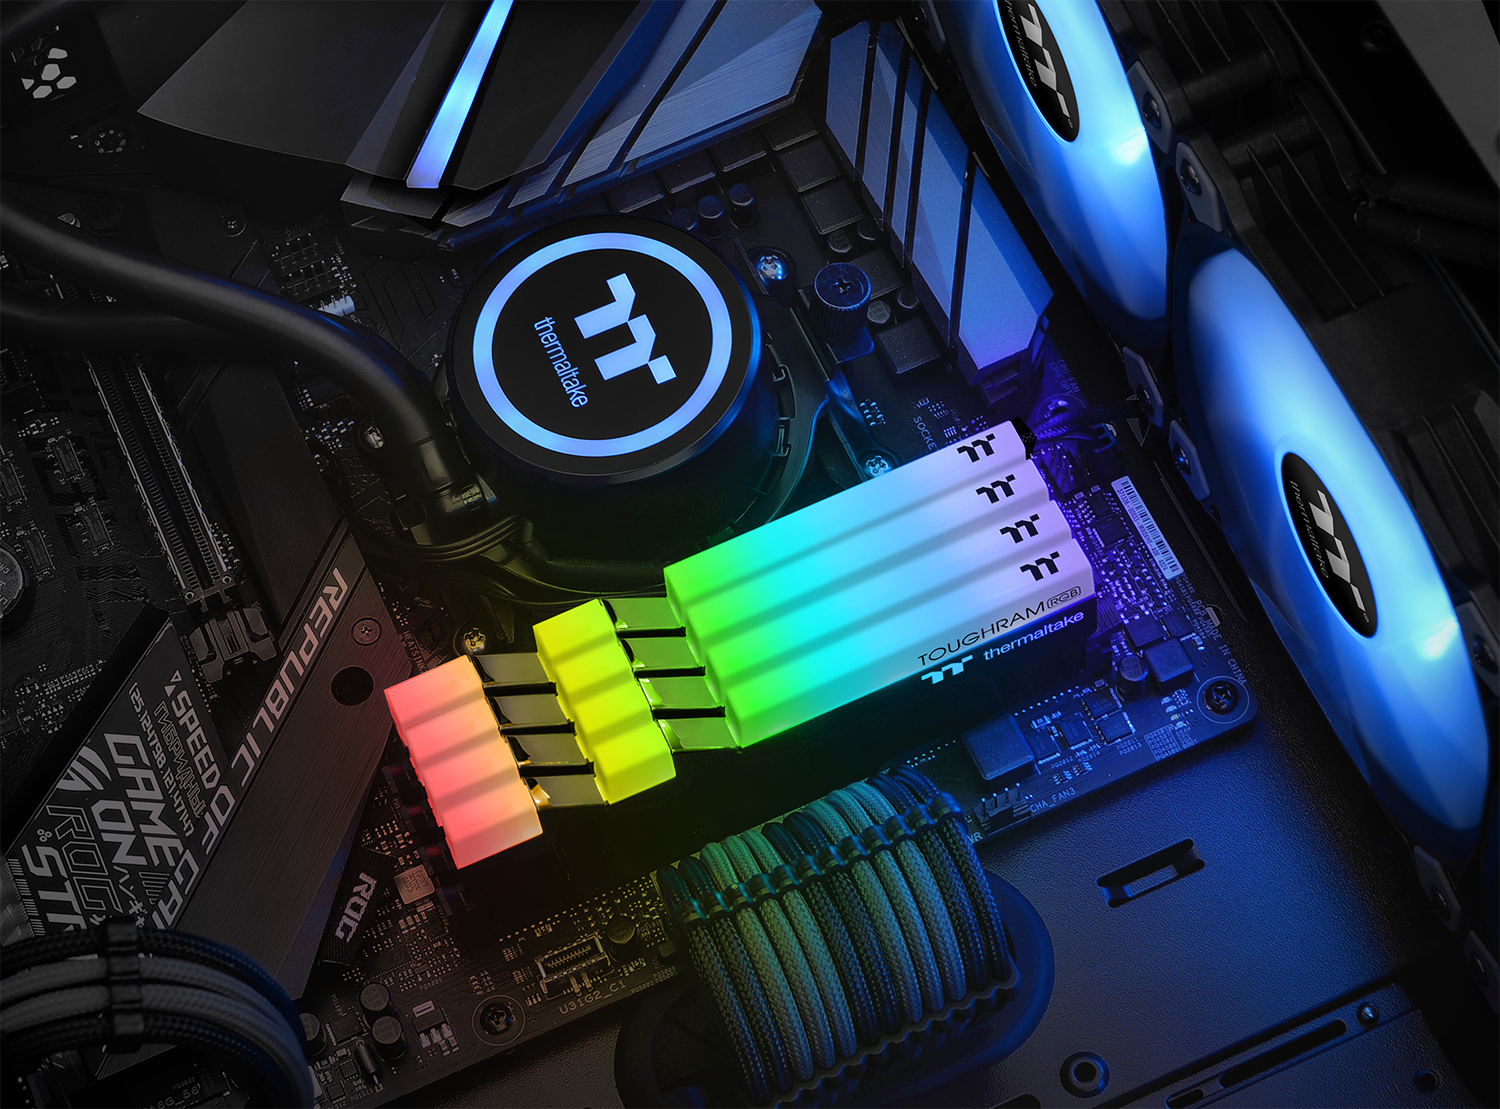 Thermaltake TOUGHRAM RGB DDR4 Memory 5